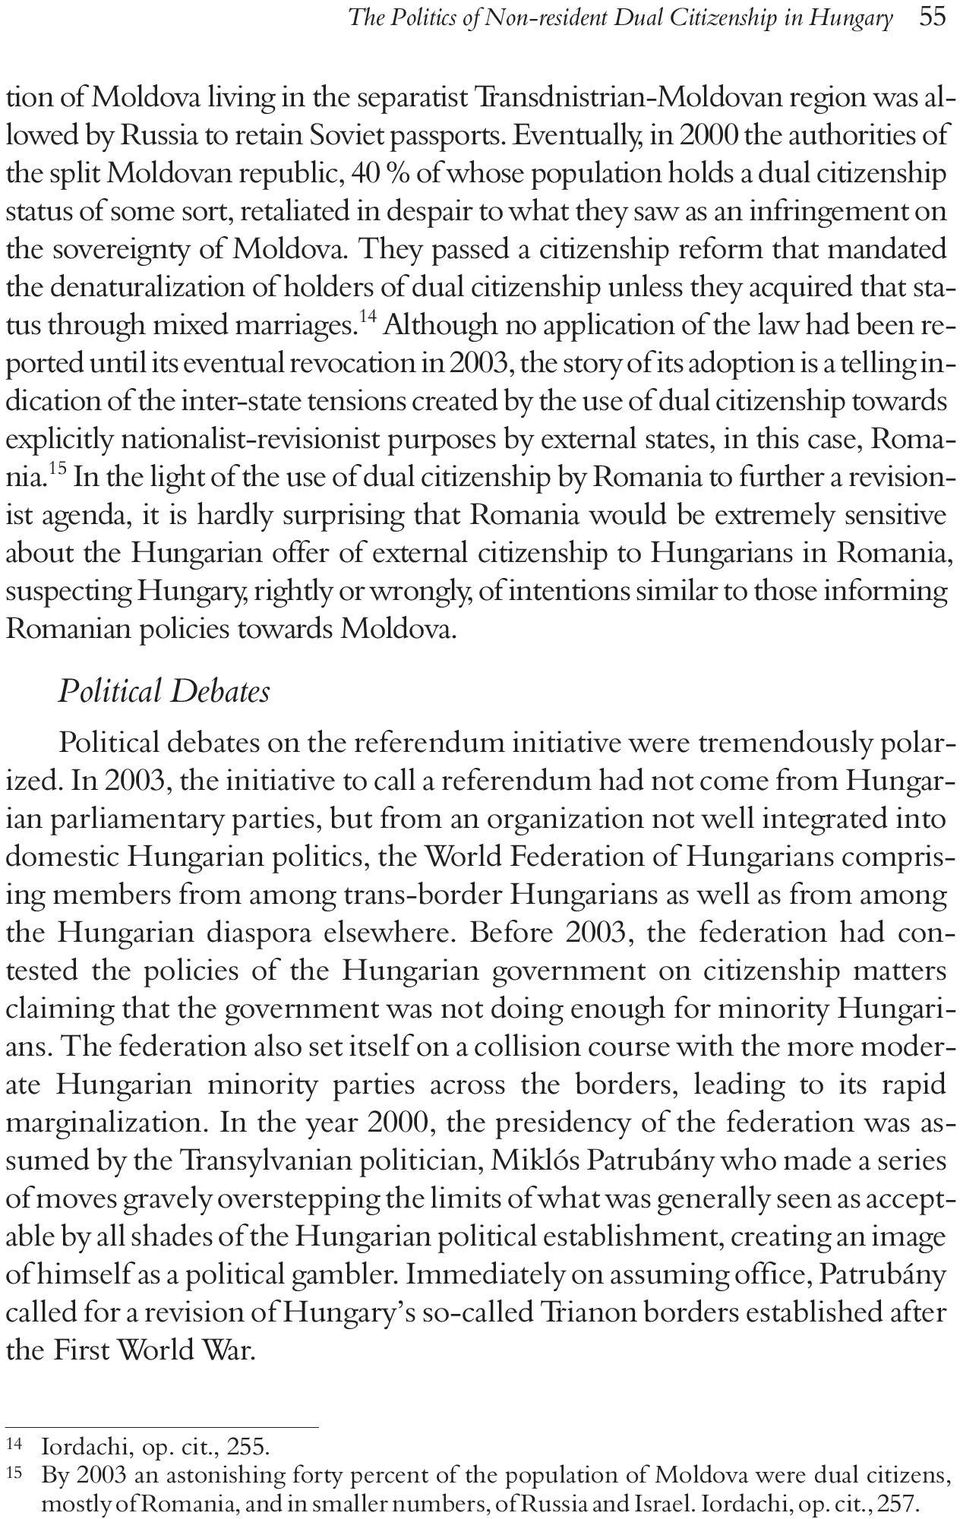 the sovereignty of Moldova. They passed a citizenship reform that mandated the denaturalization of holders of dual citizenship unless they acquired that status through mixed marriages.